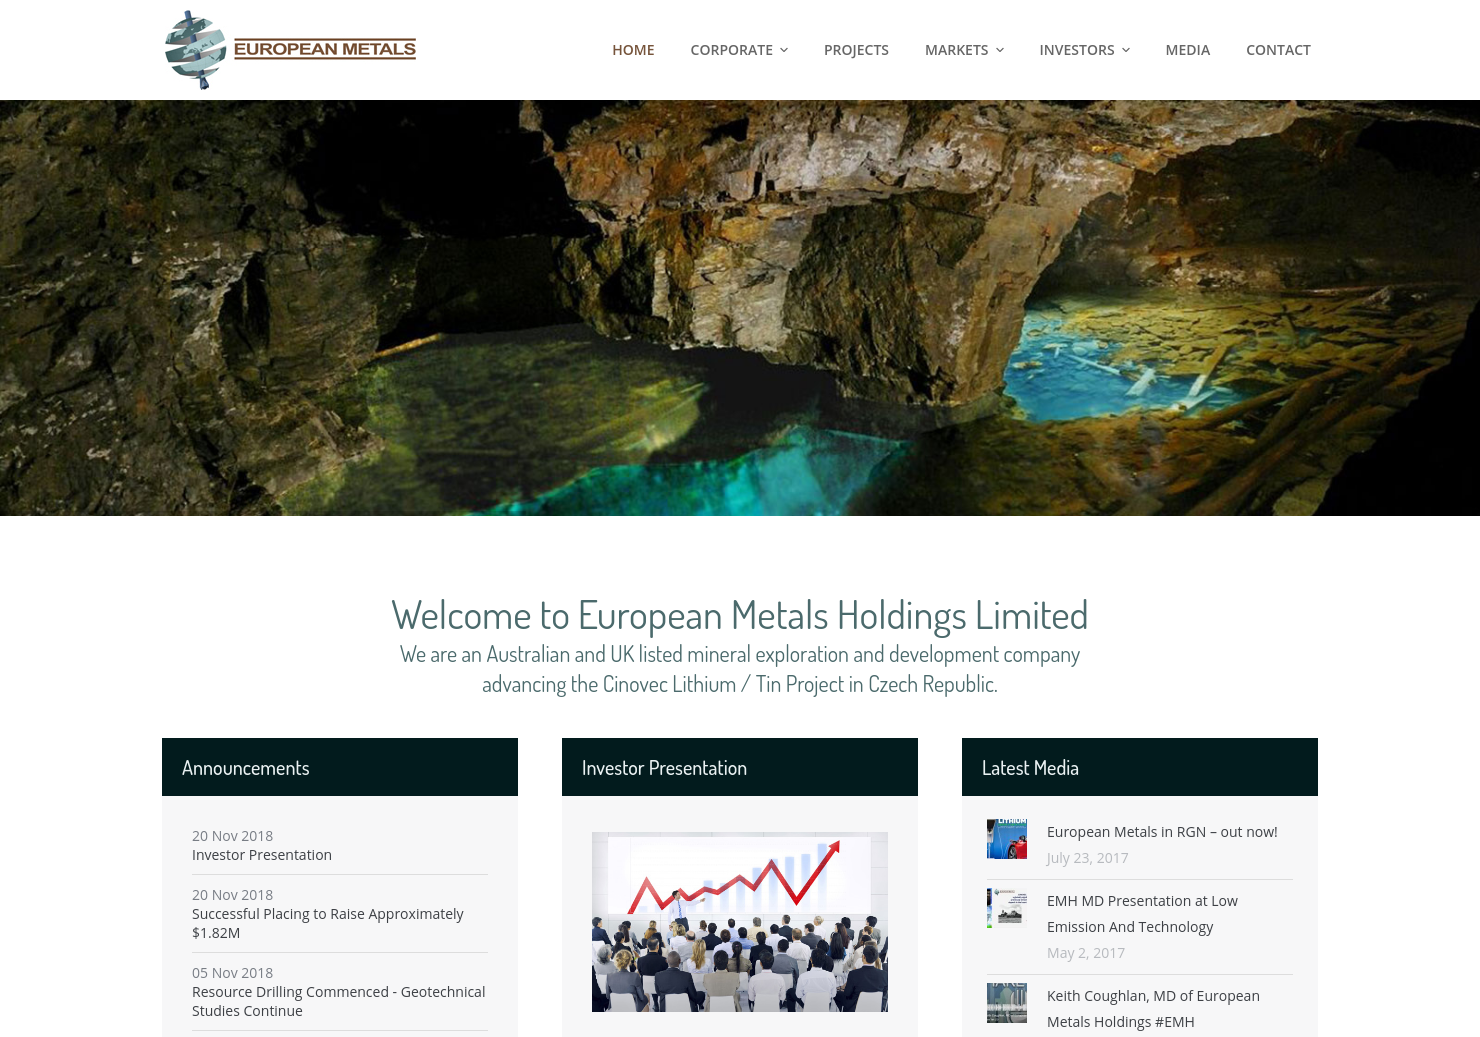 European Metals Holdings Home Page